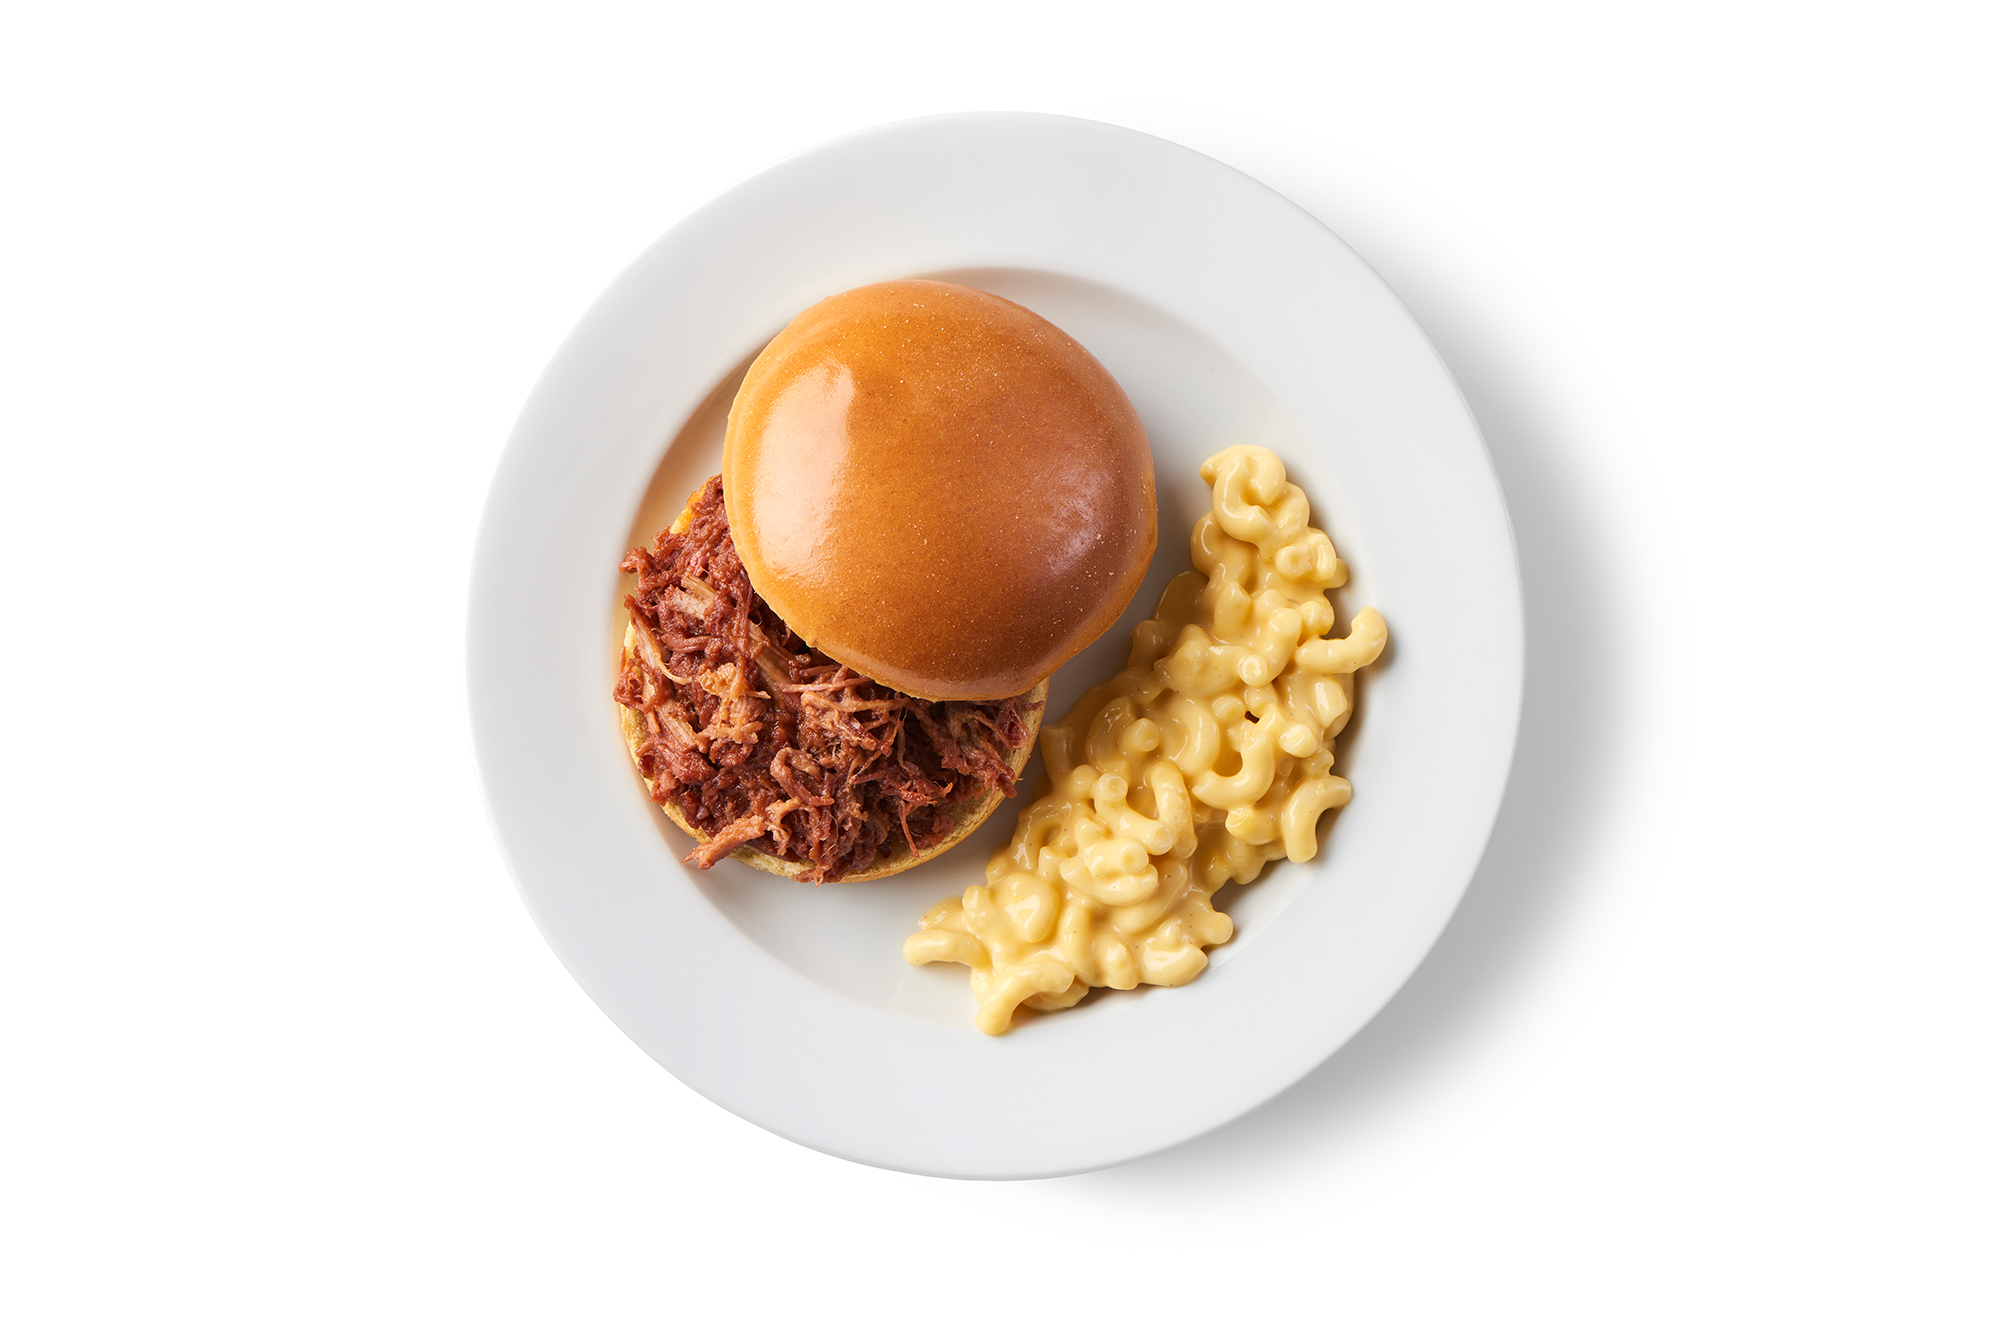 Ikea Launches New Lingonberry Pulled Pork Sandwich